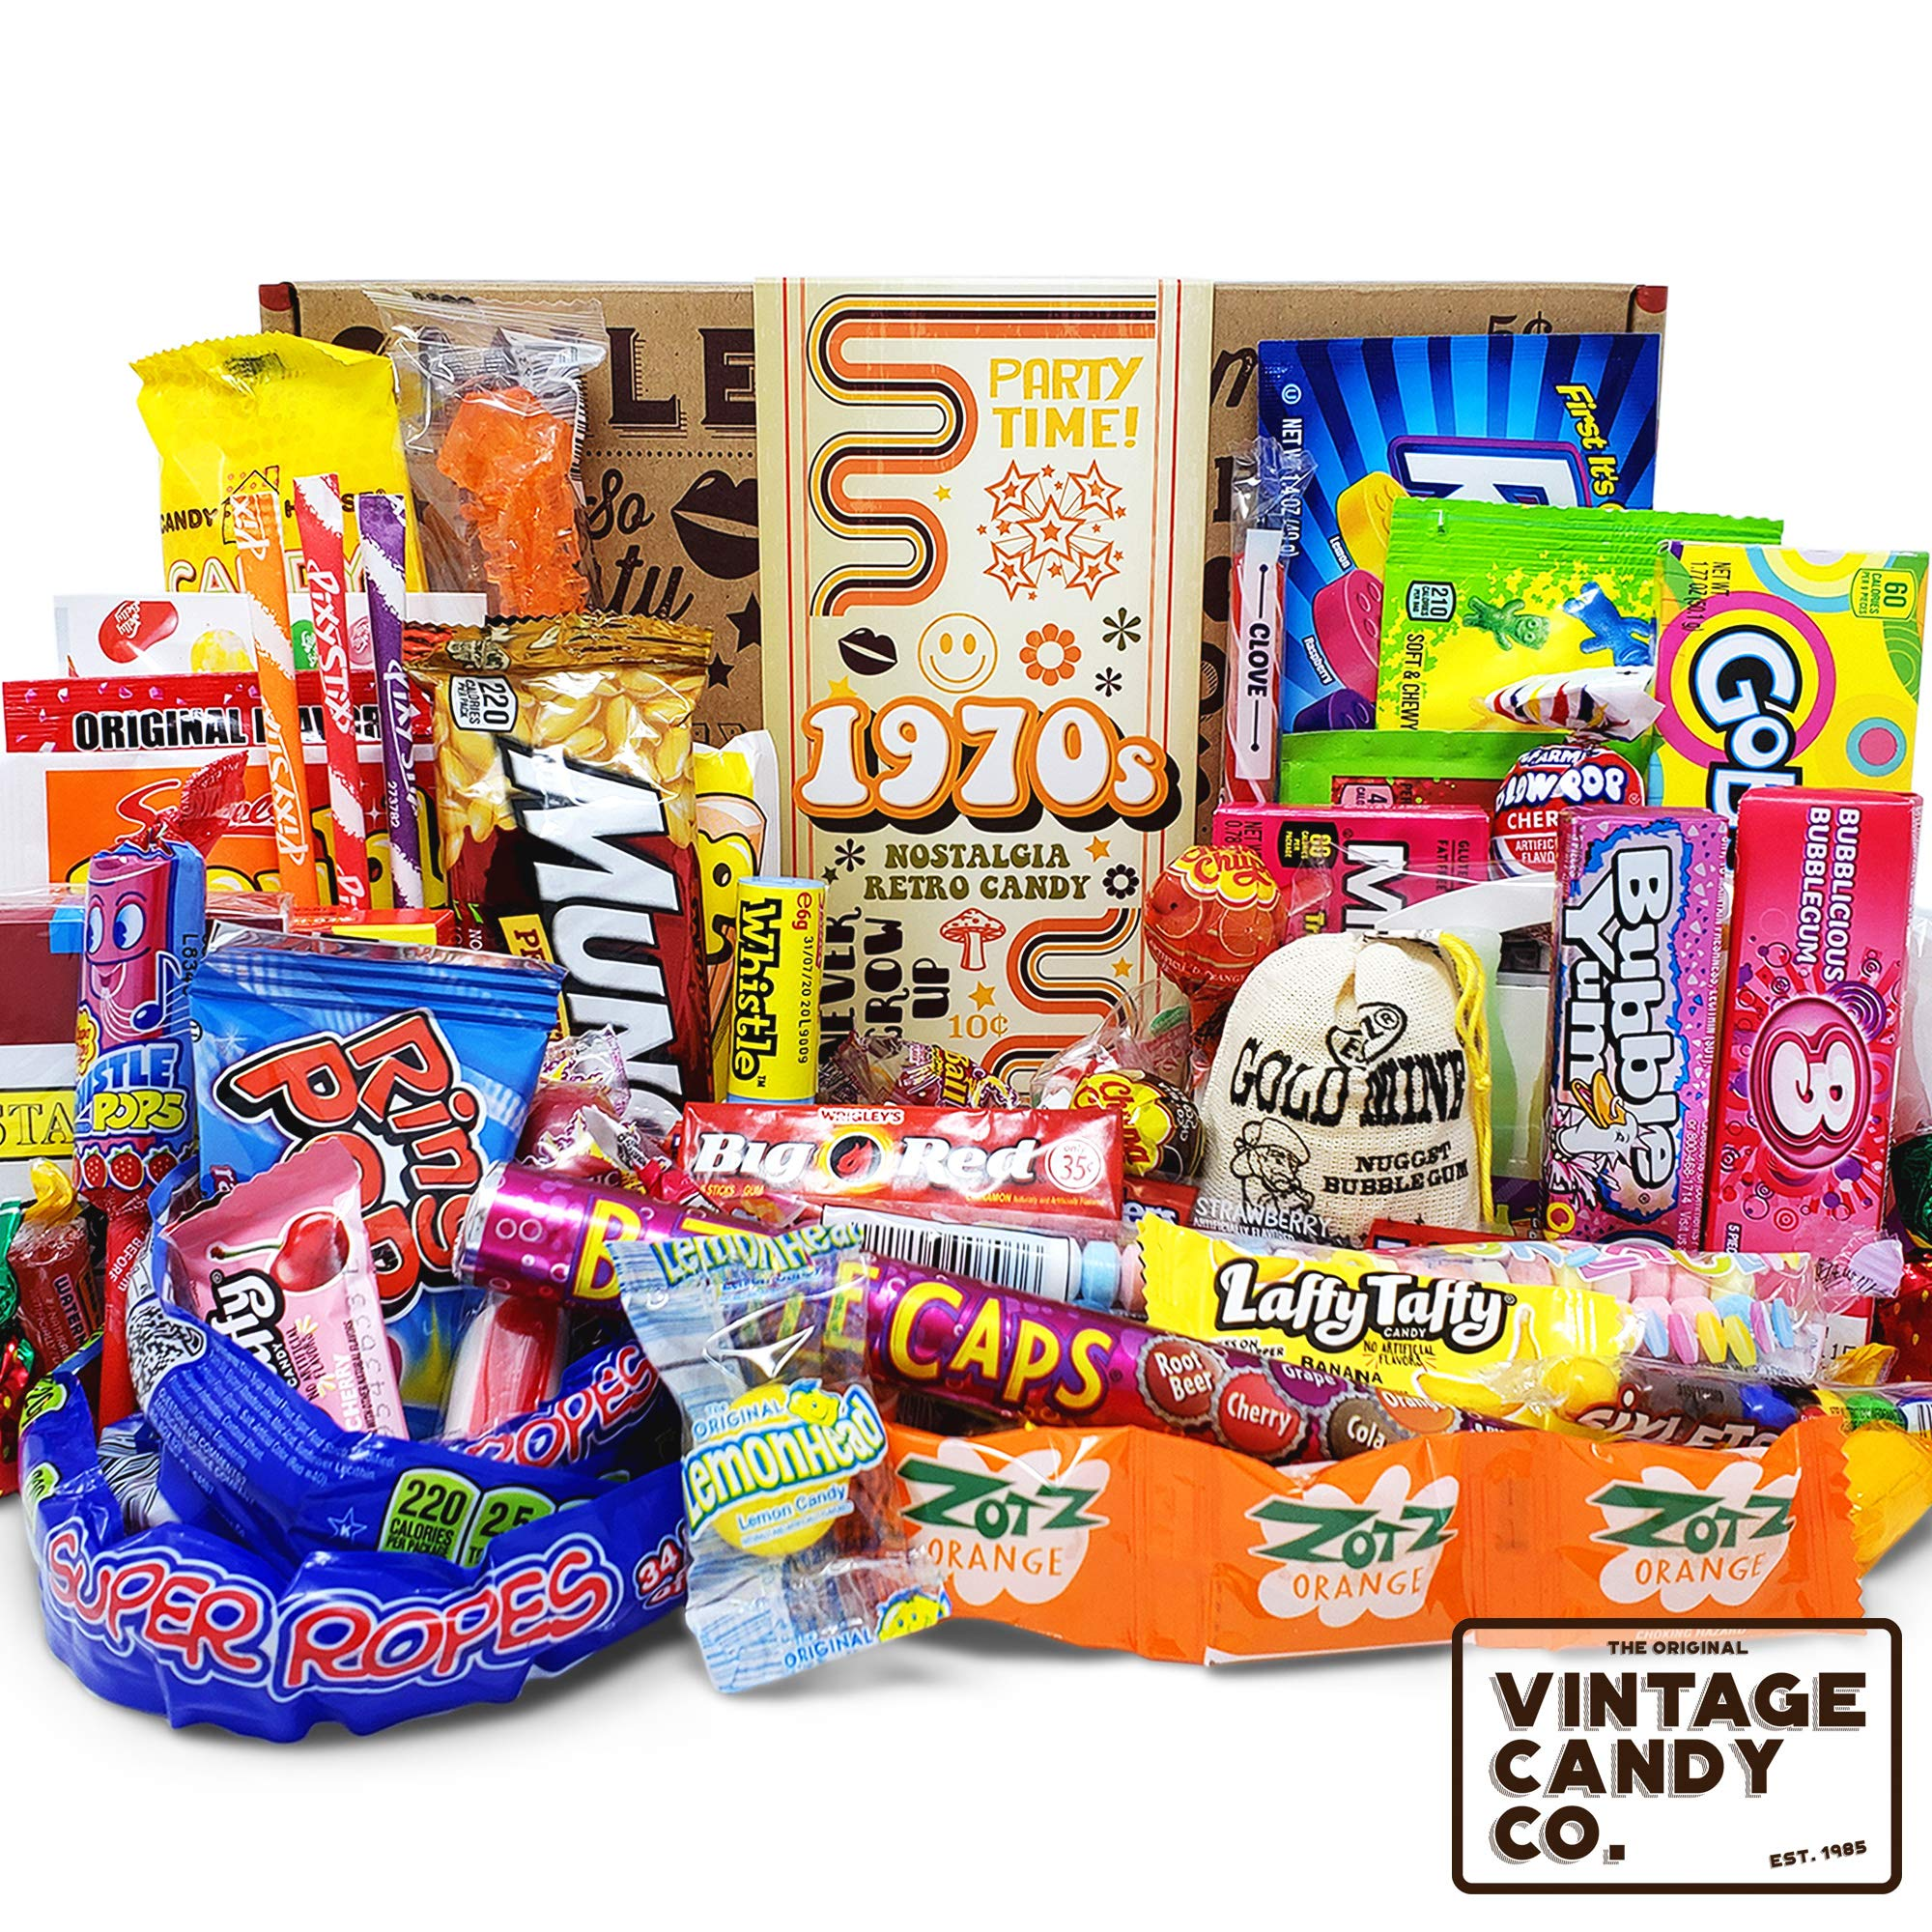 VINTAGE CANDY CO. 1970s RETRO CANDY GIFT BOX - 70s Nostalgia Candies - Flashback SEVENTIES Fun Gag Gift Basket - PERFECT '70s Candies For Adults, College Students, Men or Women, Kids, Teens by Vintage Candy Co.